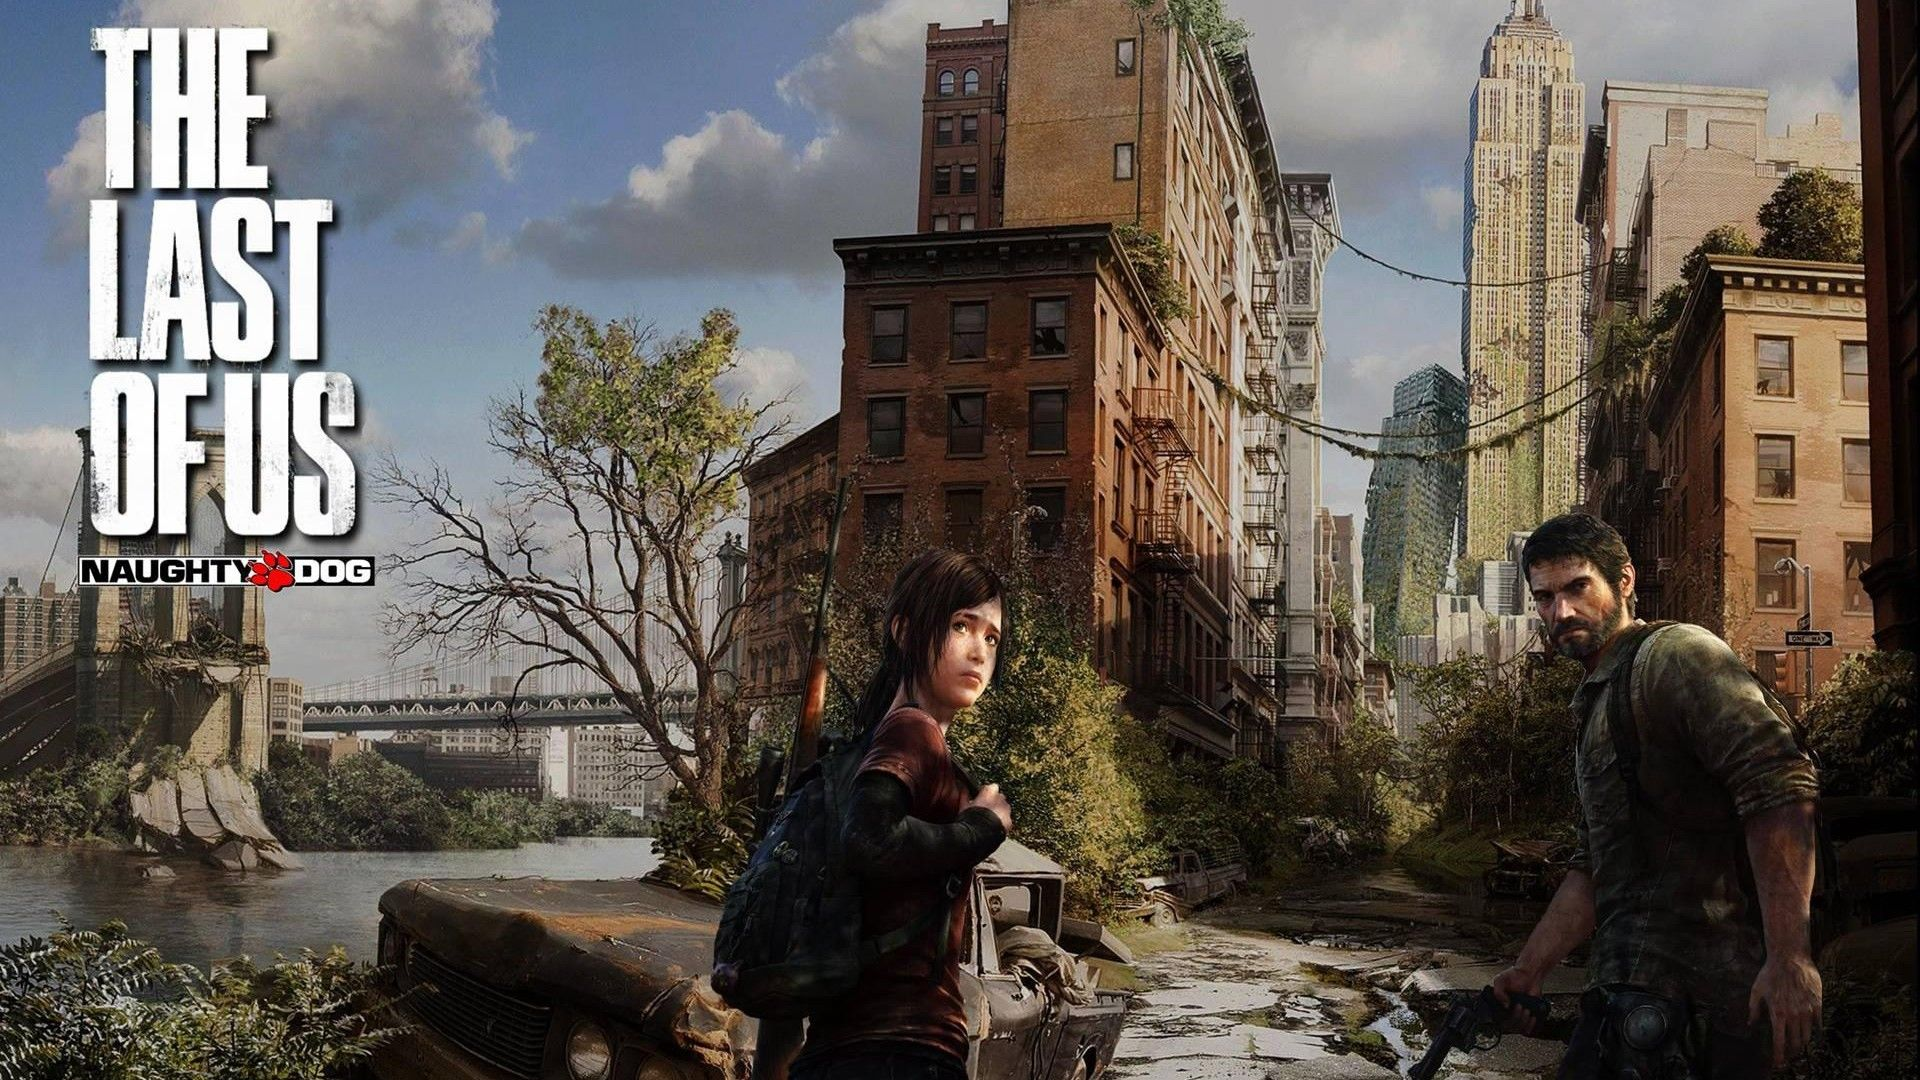 The Last Of Us 1080p 1920x1080 Wallpaper Download The Last Of Us